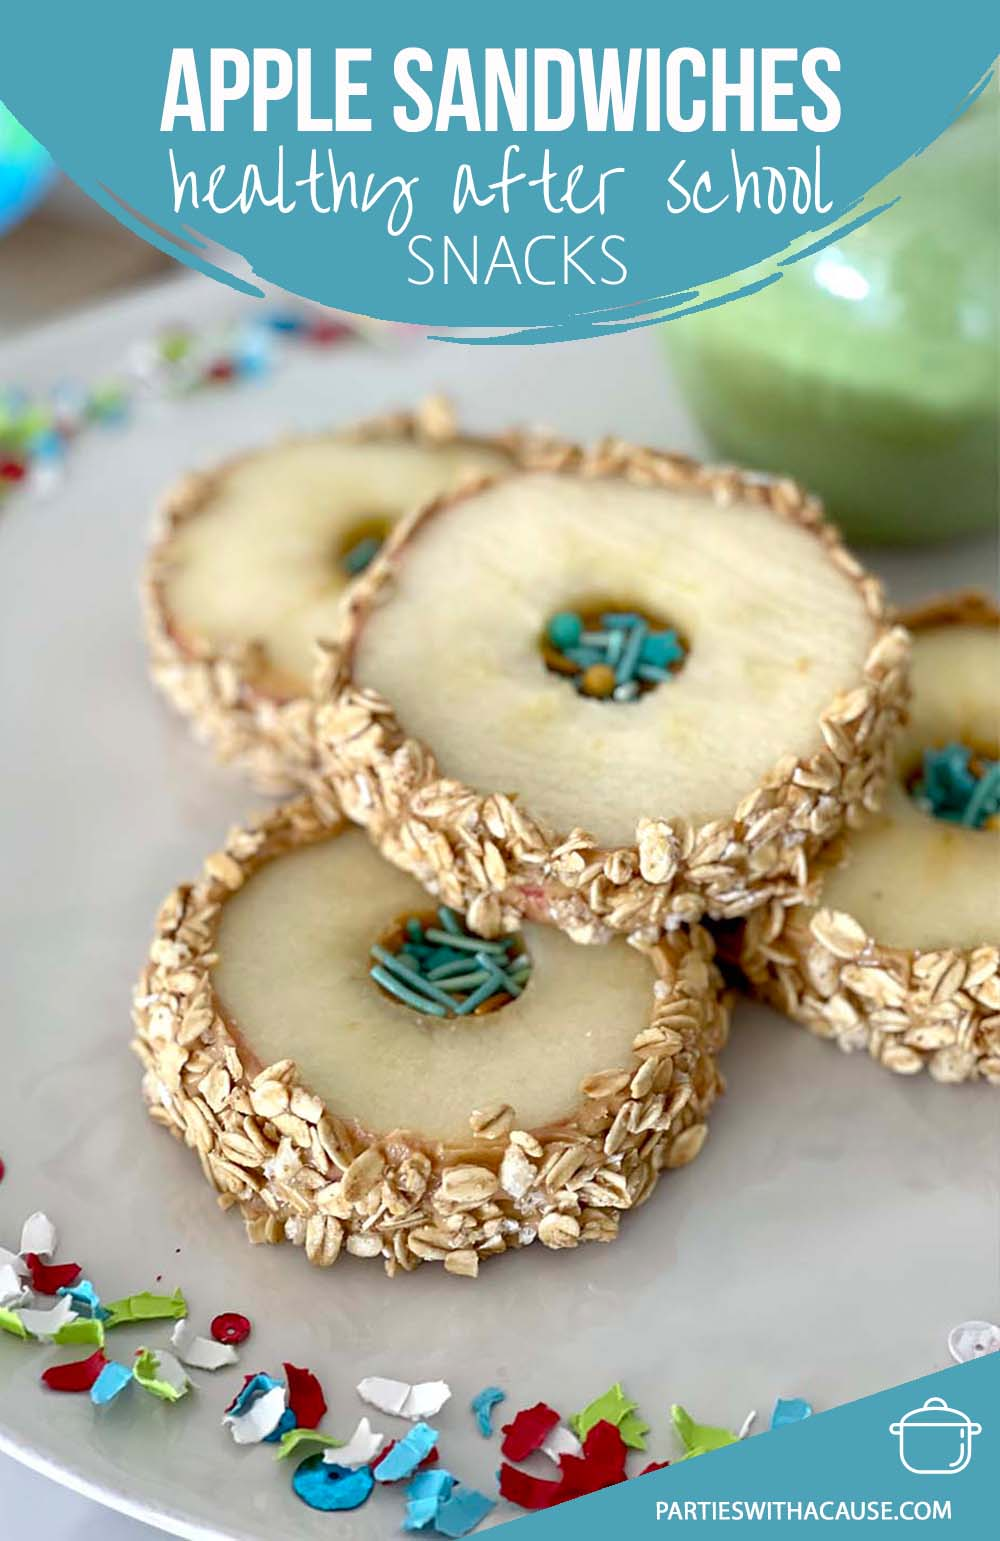 Apple sandwiches rolled in granola with sprinkles